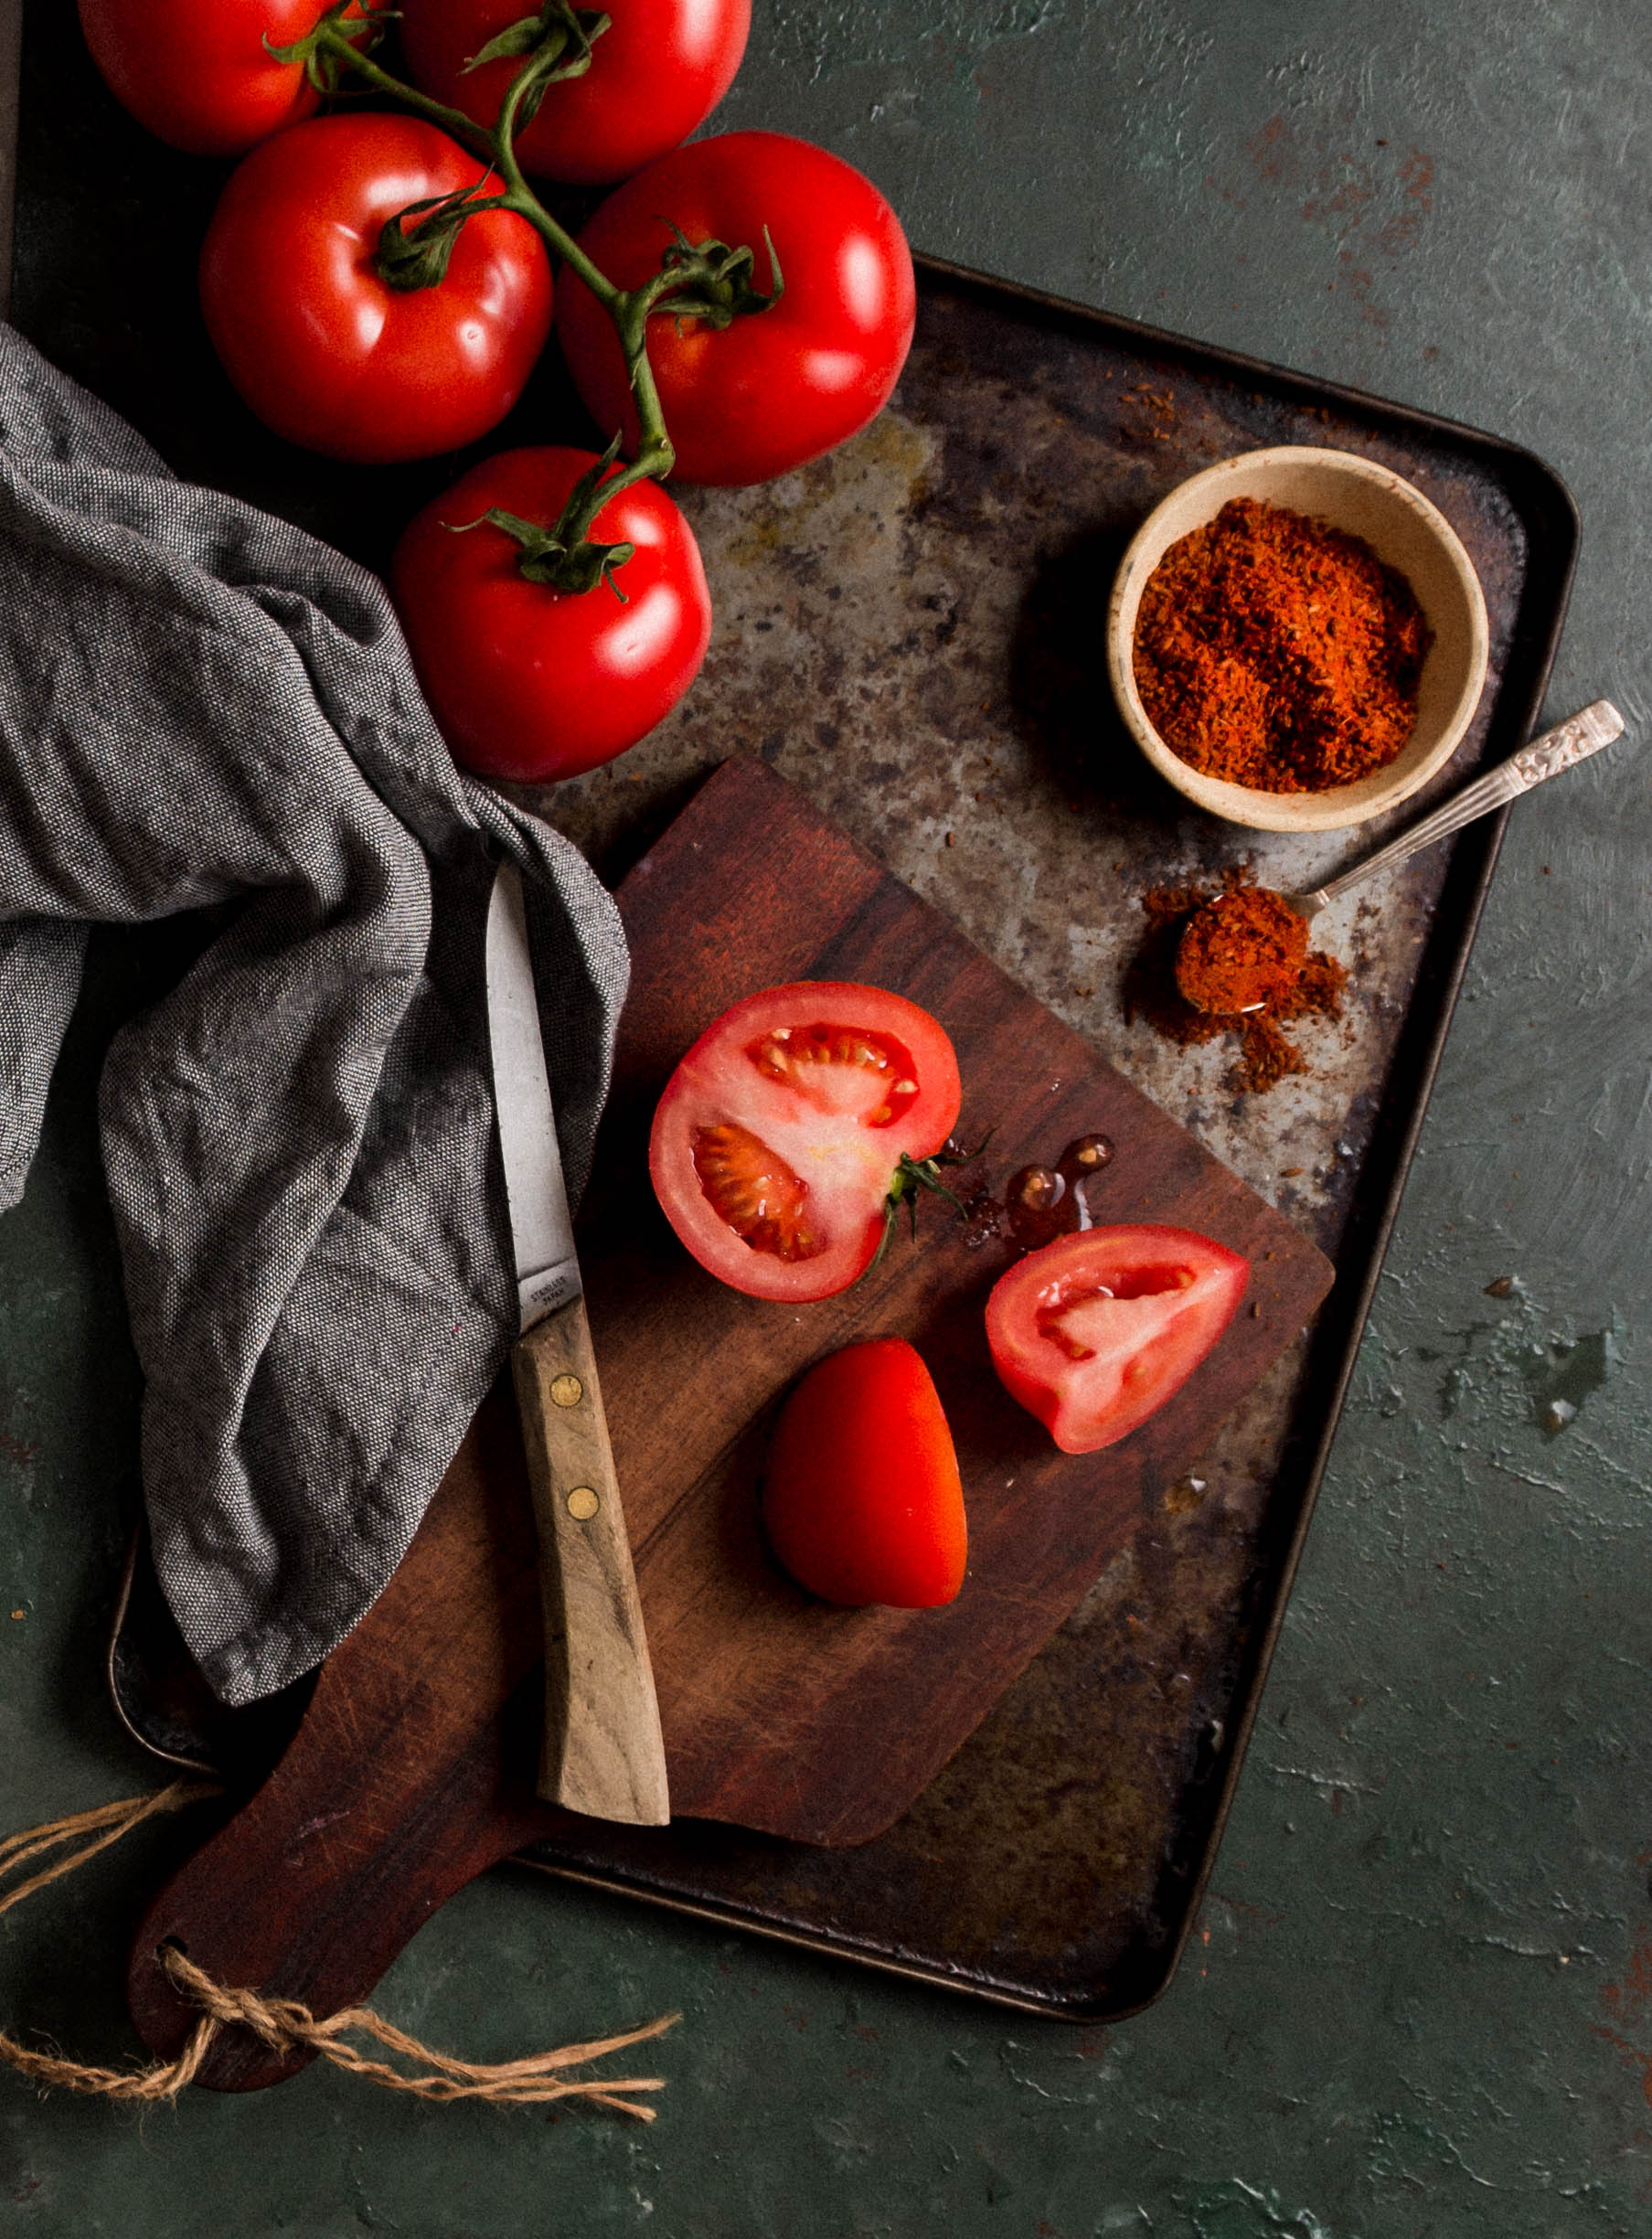 still life photography of tomatoes